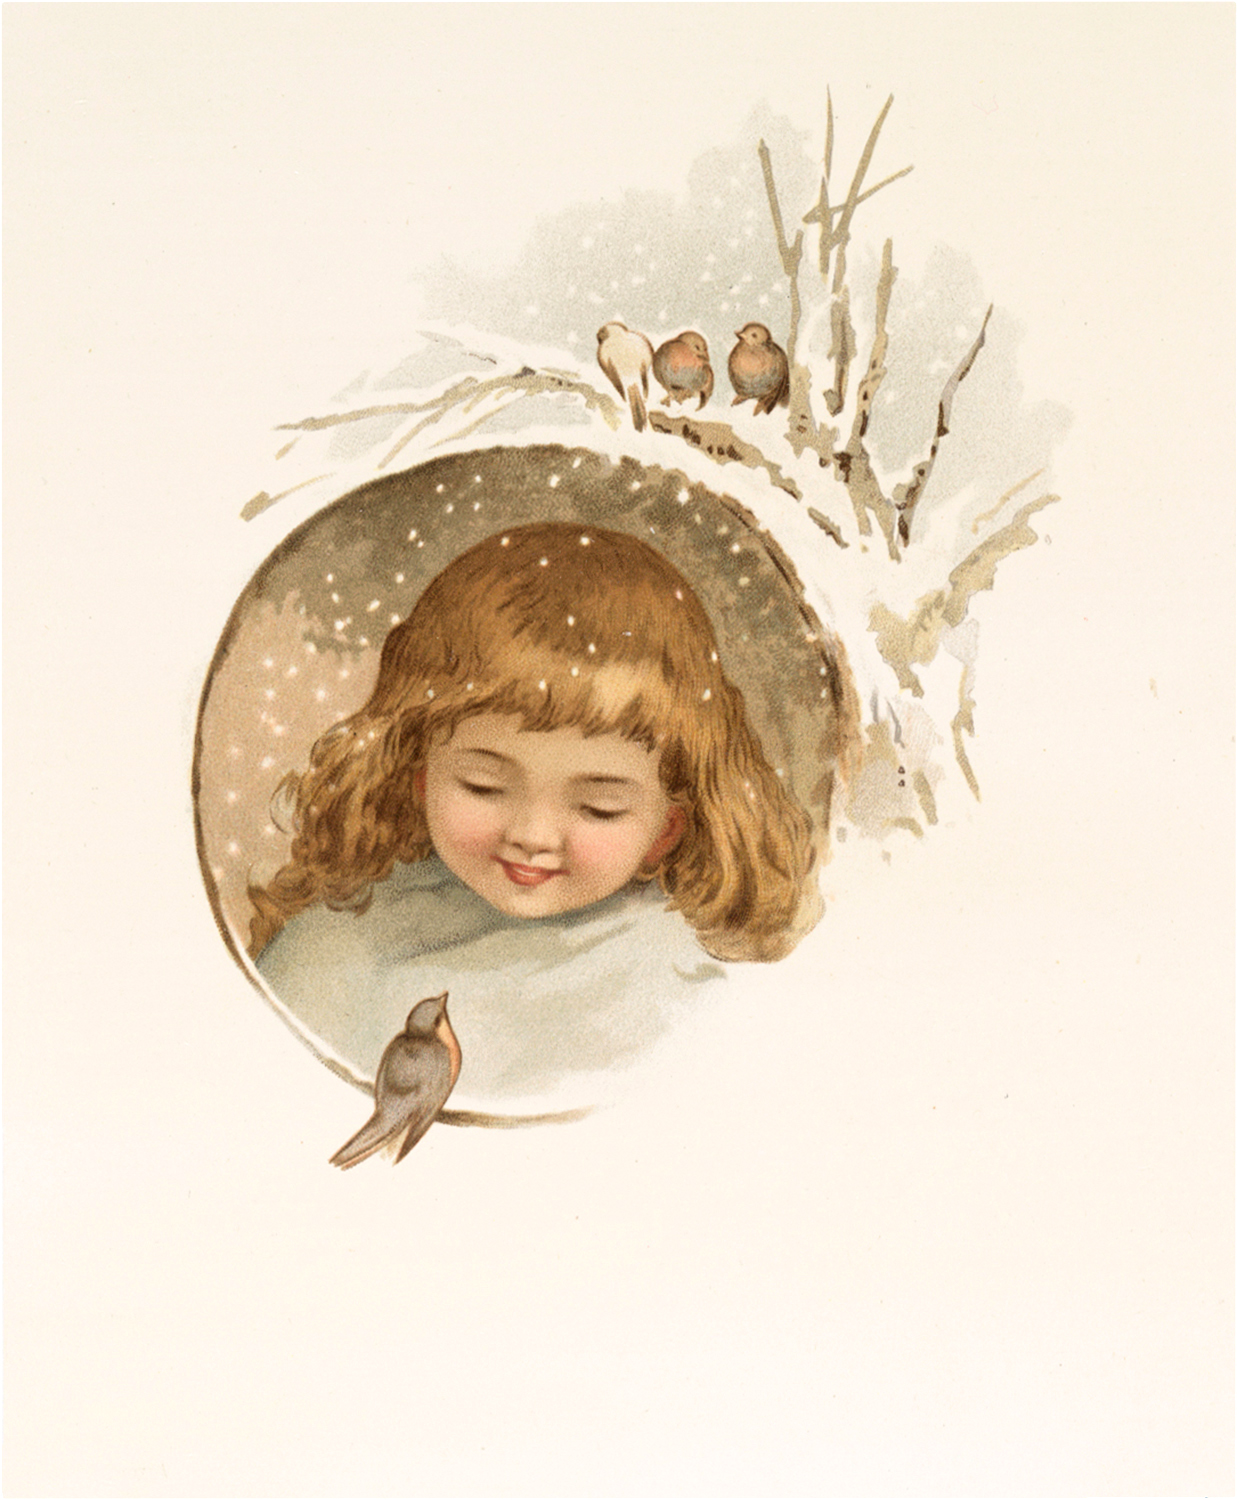 Snow Girl with Birds Image